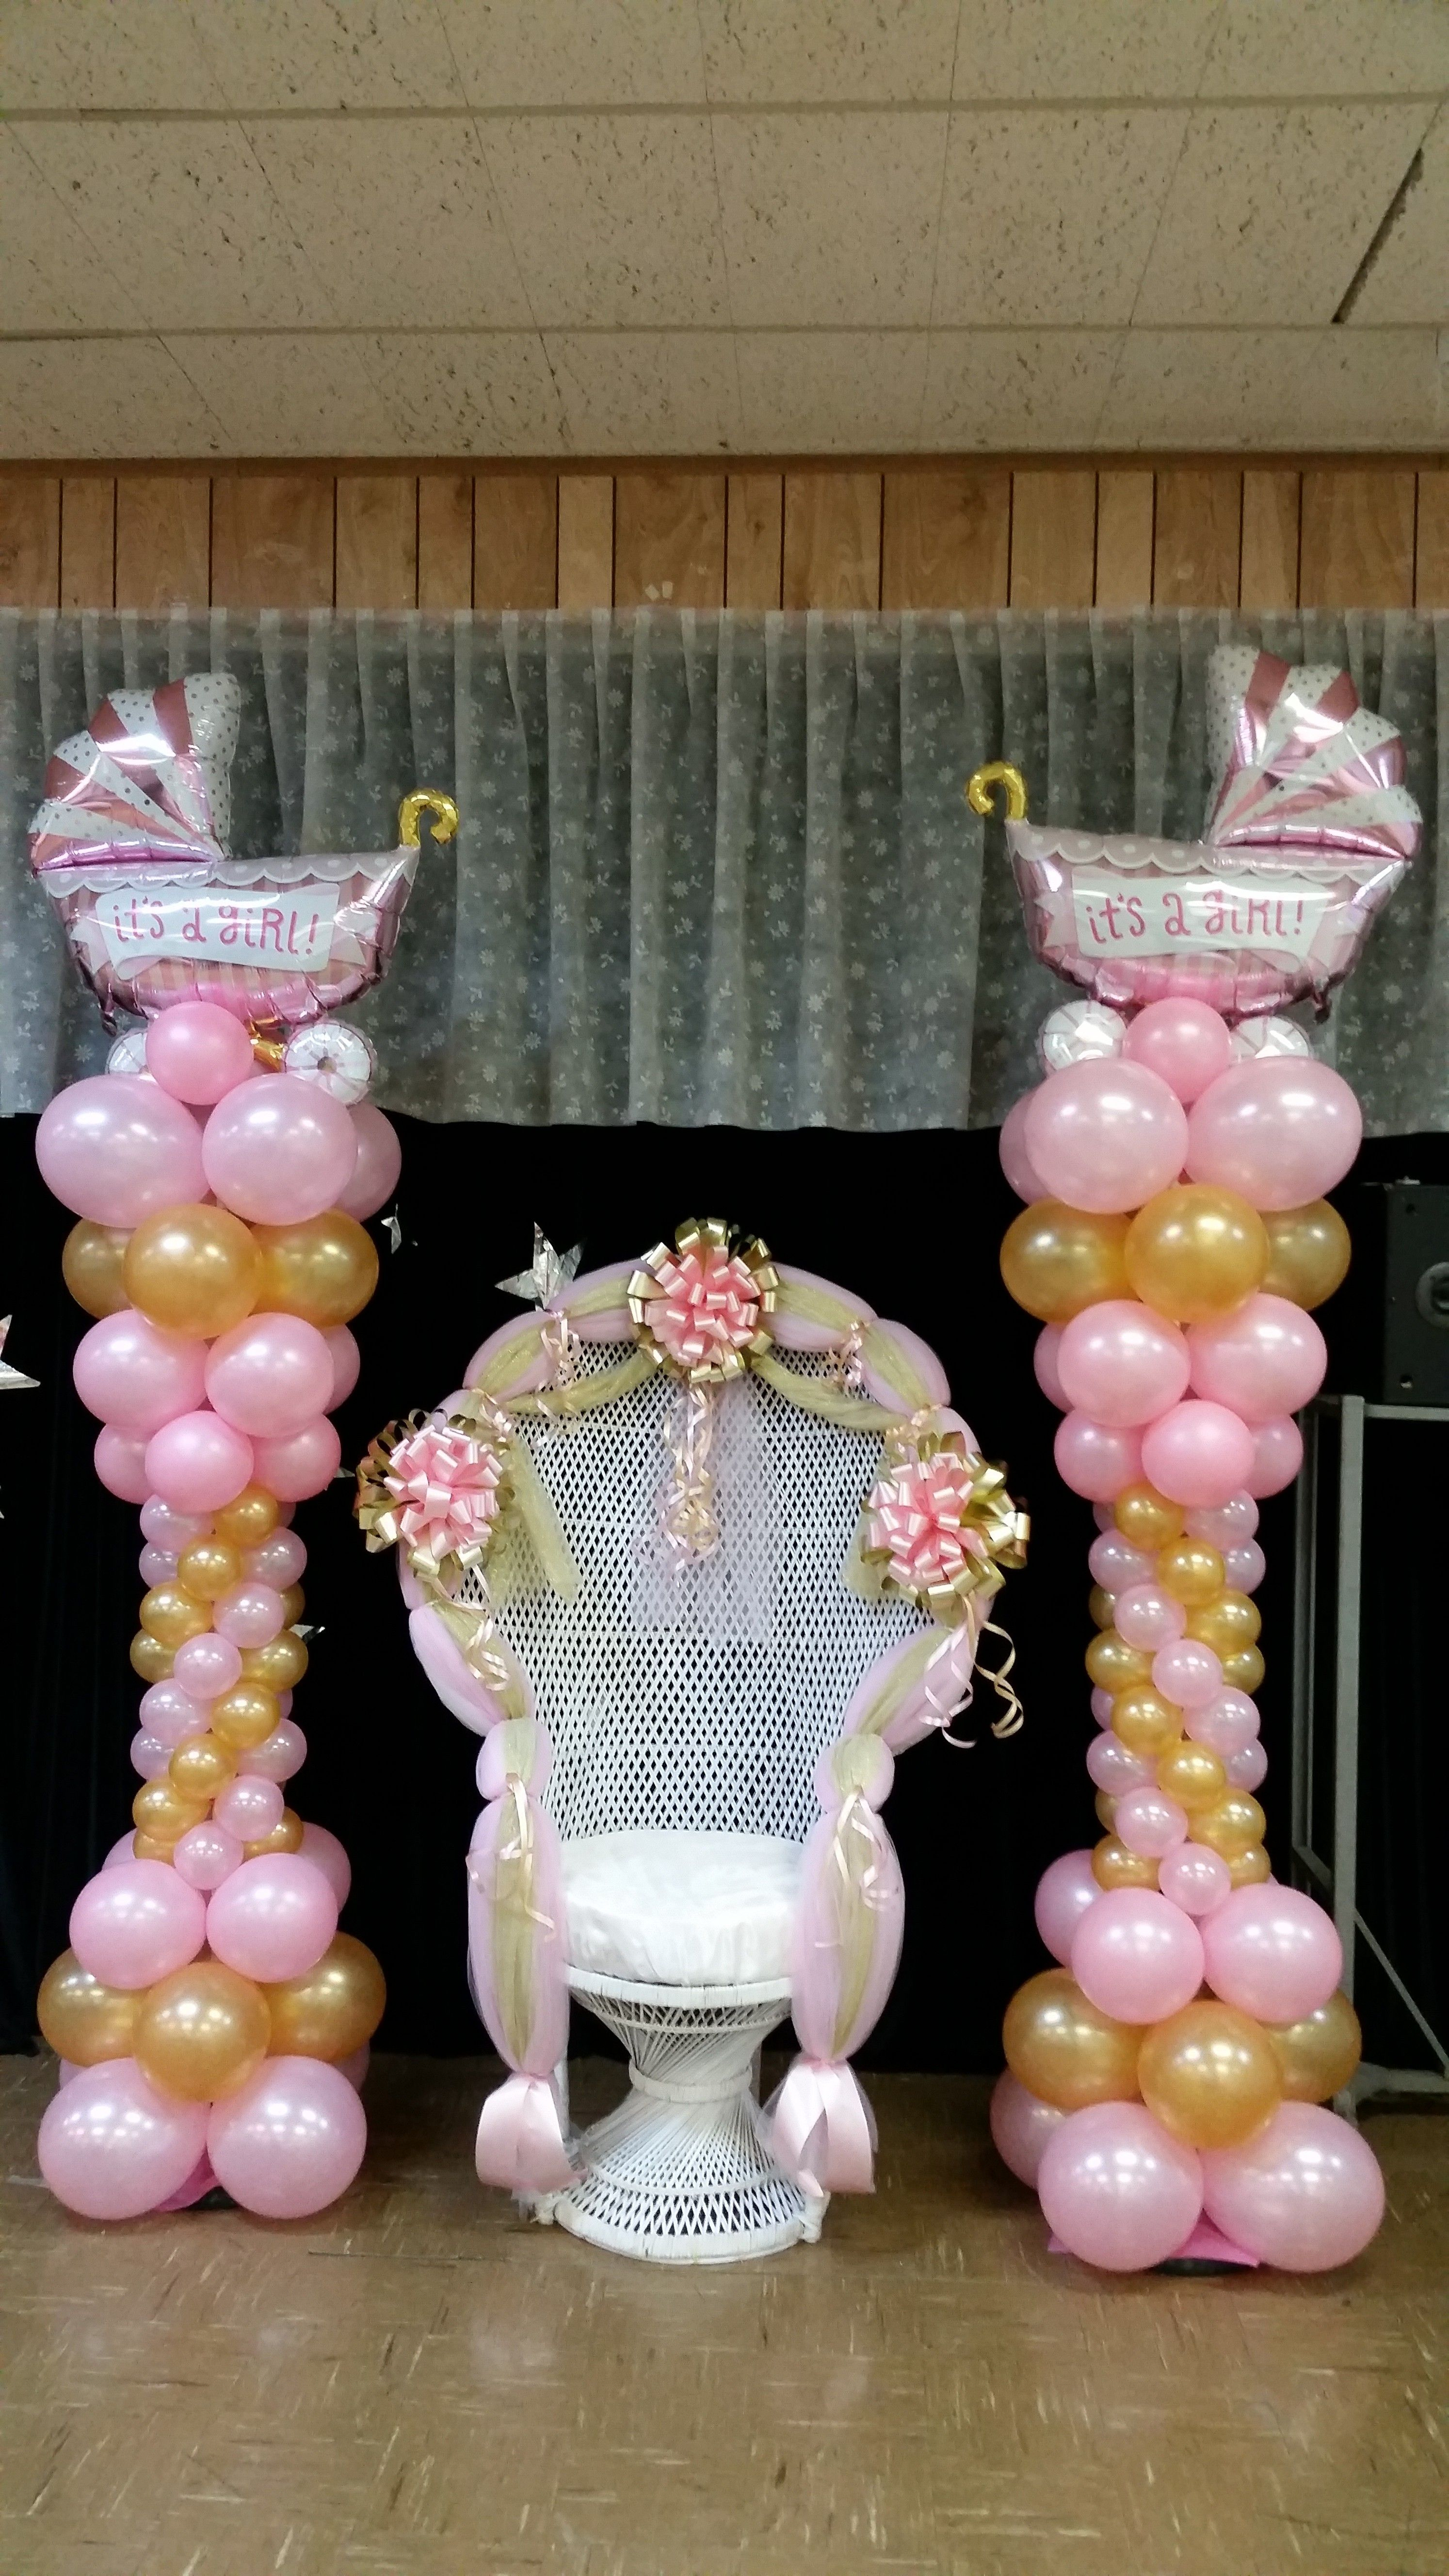 Baby Shower Chair And Balloon Columns Baby Shower Chair Baby